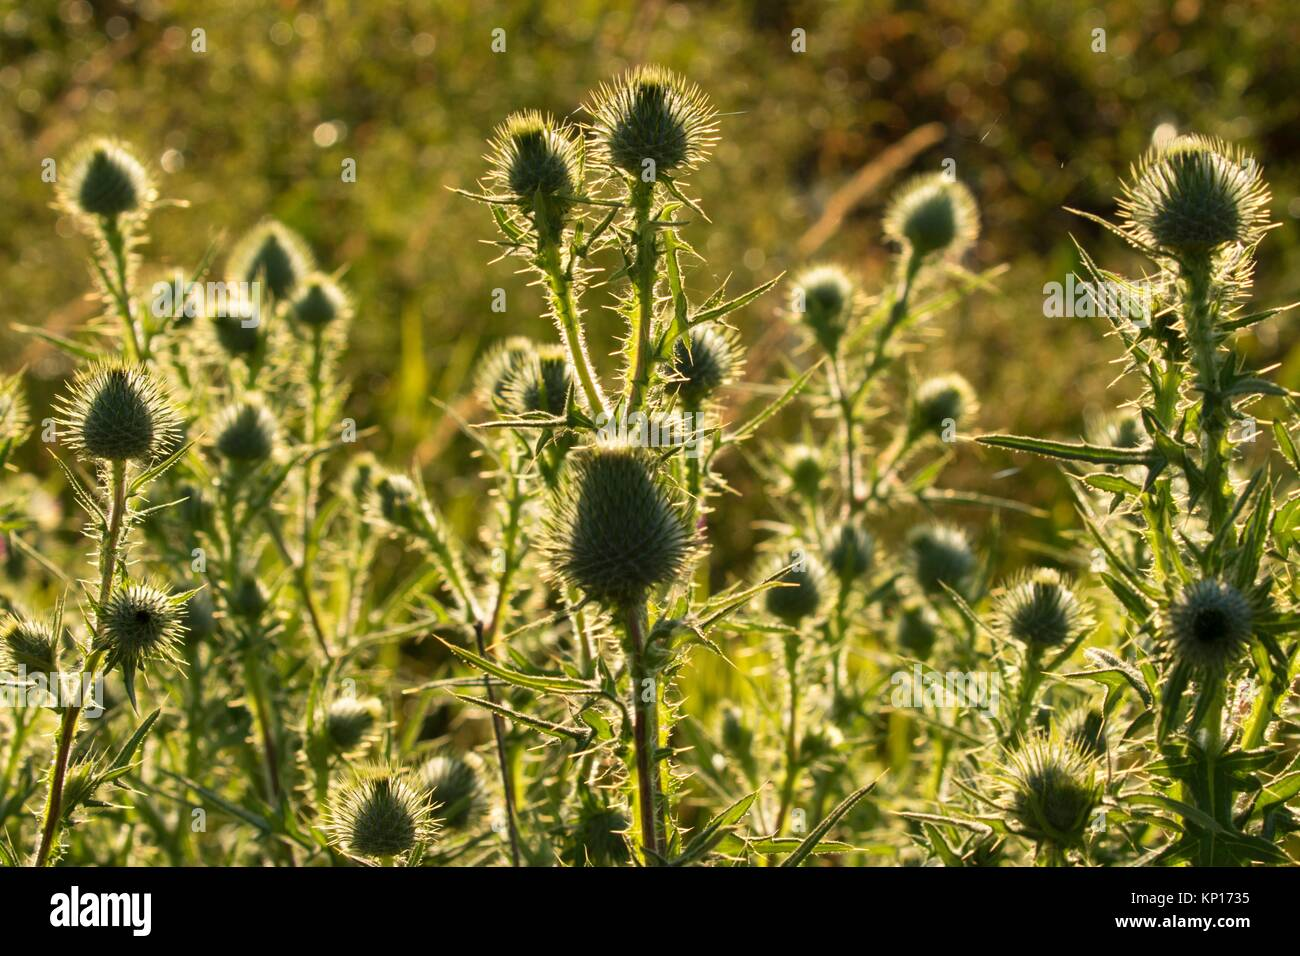 Thistle, Ankeny National Wildlife Refuge, Oregon. - Stock Image